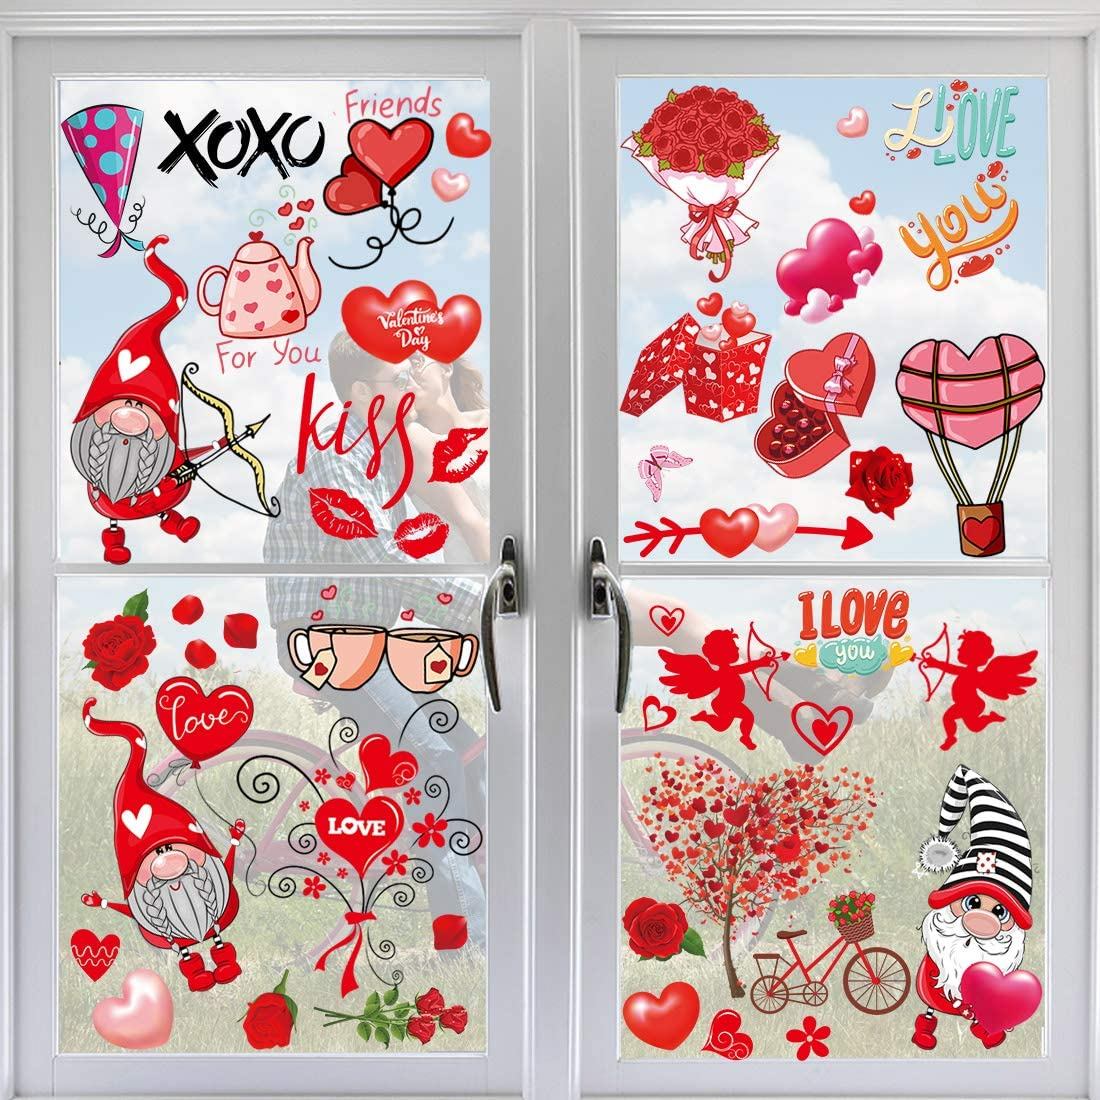 ricluck Valentine's Boston Mall Day Window Clings 9 Decorations Luxury goods Sheets Windo